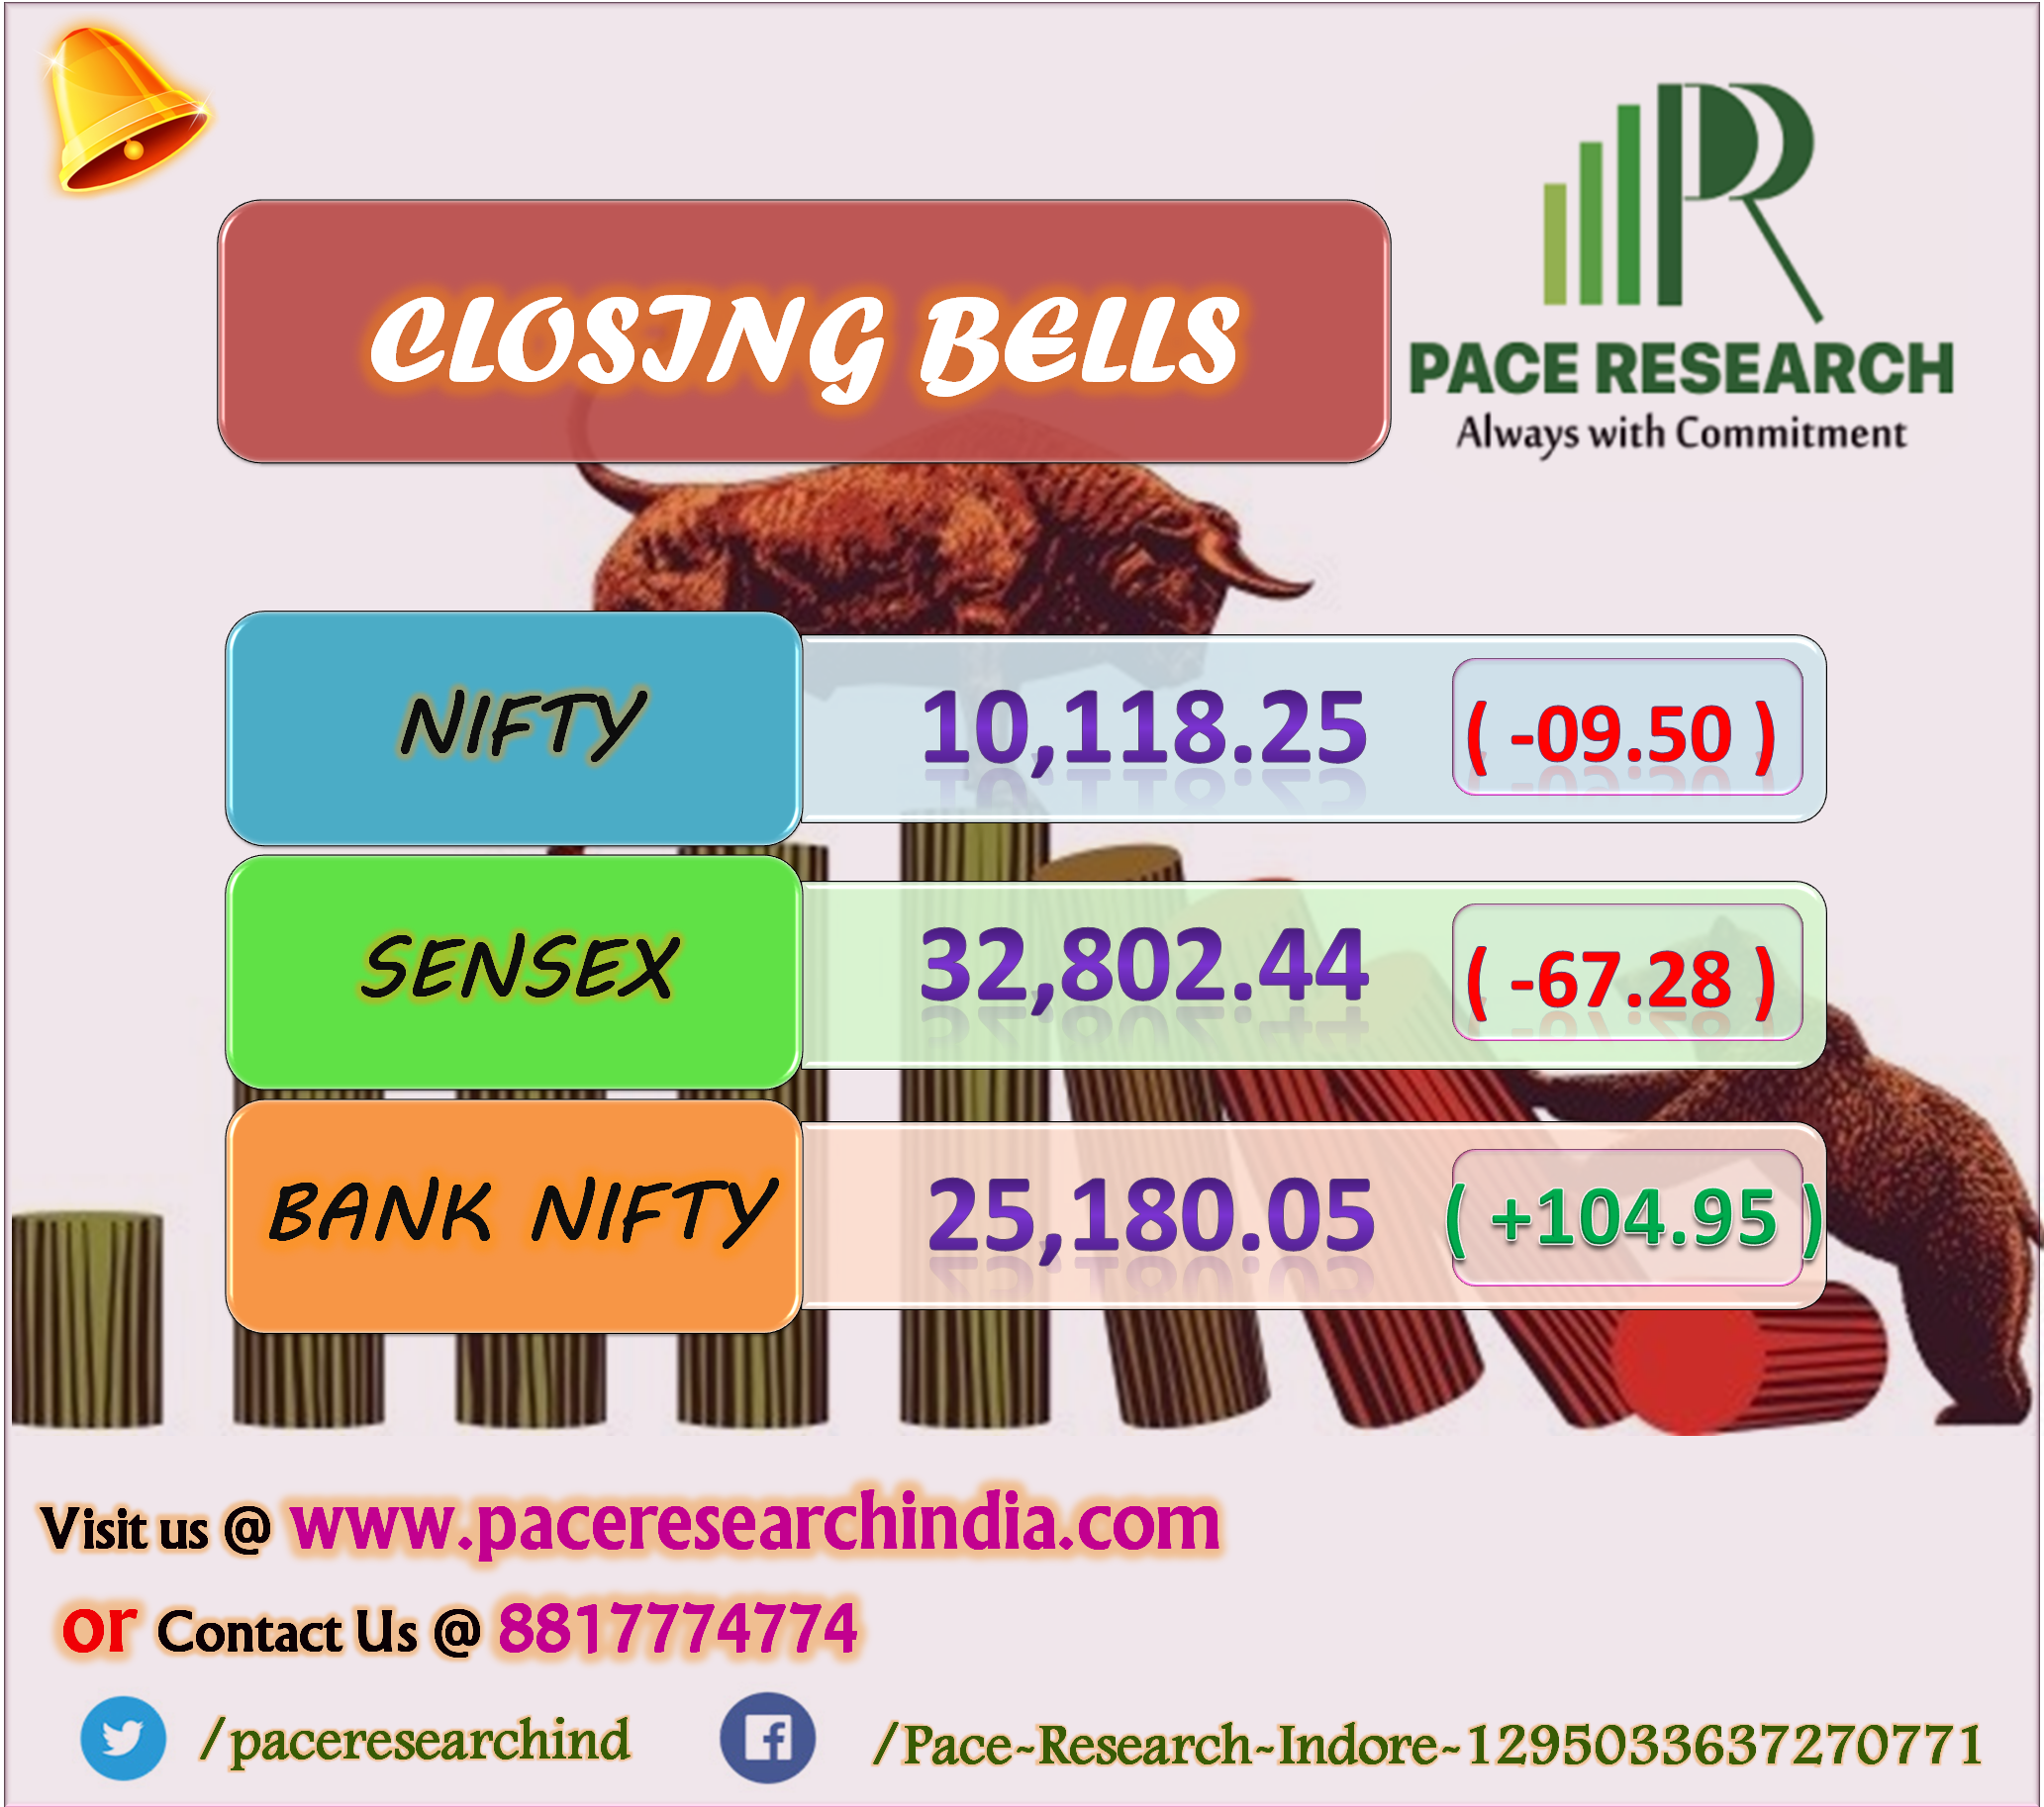 The 30share BSE Sensex was down 67.28 points at 32,802.44